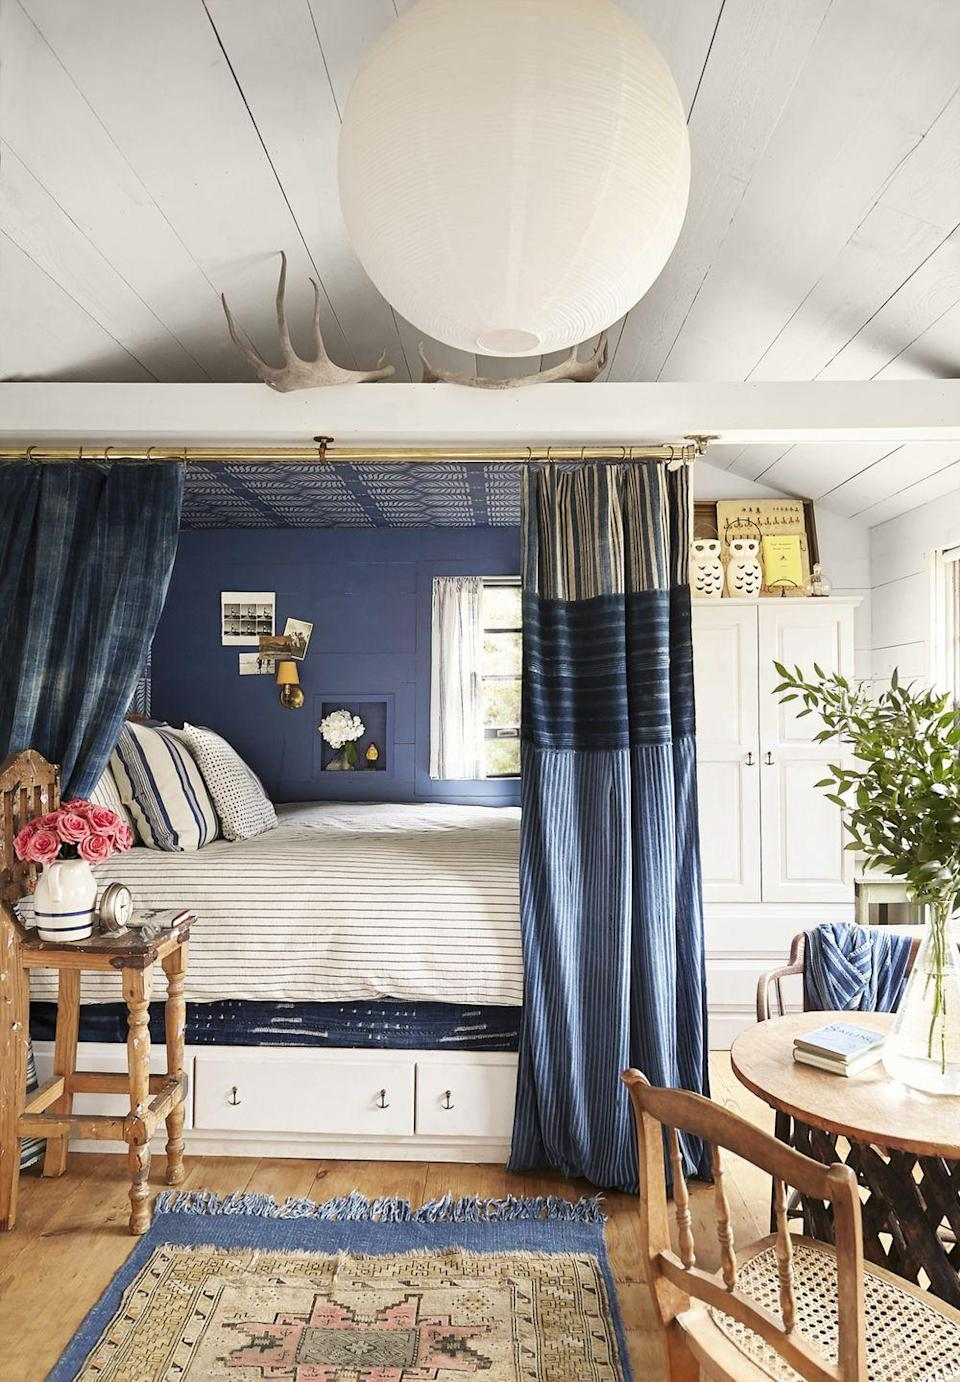 """<p>Use paint to create a cozy bed nook within a bigger bedroom. The second homeowner Matt Albiani of <a href=""""https://www.mategallery.com/"""" rel=""""nofollow noopener"""" target=""""_blank"""" data-ylk=""""slk:Mate Gallery"""" class=""""link rapid-noclick-resp"""">Mate Gallery</a> walked into the cozy (only about 12 feet by 15 feet!) freestanding art studio, he envisioned a captain's bed, but it took his partner Ron Brand a little longer to """"see it."""" Says Ron, """"I needed a couple of glasses of wine and <em>a lot</em> of tape on the floor, and then the penny dropped!"""" Once the bed was built, they hung the indigo textiles and added indigo-inspired wallpaper on the wall and ceiling.<strong><br></strong><strong><br></strong><strong>Get the Look: <br></strong>Blue Wall Paint Color: <a href=""""https://store.benjaminmoore.com/storefront/index.ep"""" rel=""""nofollow noopener"""" target=""""_blank"""" data-ylk=""""slk:New York State of Mind by Benjamin Moore"""" class=""""link rapid-noclick-resp"""">New York State of Mind by Benjamin Moore<br></a>Ceiling Wallpaper: <a href=""""https://go.redirectingat.com/?id=74968X1525072&xs=1&url=https%3A%2F%2Fwww.serenaandlily.com%2Fgranada-wallpaper%2Fm12427.html&sref=https%3A%2F%2Fwww.countryliving.com%2Fhome-design%2Fhouse-tours%2Fg32026876%2Fhamptons-beach-cottage%2F%3Fpre%3Dhome-design%252Fhouse-tours%252F%26prefix%3Dg%26id%3D32026876%26del%3D%26variantId%3D%26post%3D%252Fhamptons-beach-cottage"""" rel=""""nofollow noopener"""" target=""""_blank"""" data-ylk=""""slk:Granada; serenaandlily.com"""" class=""""link rapid-noclick-resp"""">Granada; <em>serenaandlily.com<br></em></a>Indigo textiles, ceramic owls, and vintage accessories: <em><a href=""""https://www.mategallery.com/"""" rel=""""nofollow noopener"""" target=""""_blank"""" data-ylk=""""slk:mate"""" class=""""link rapid-noclick-resp""""><em>mate</em></a></em><em><em><a href=""""https://www.mategallery.com/"""" rel=""""nofollow noopener"""" target=""""_blank"""" data-ylk=""""slk:gallery.com"""" class=""""link rapid-noclick-resp"""">gallery.com</a></em></em></p>"""